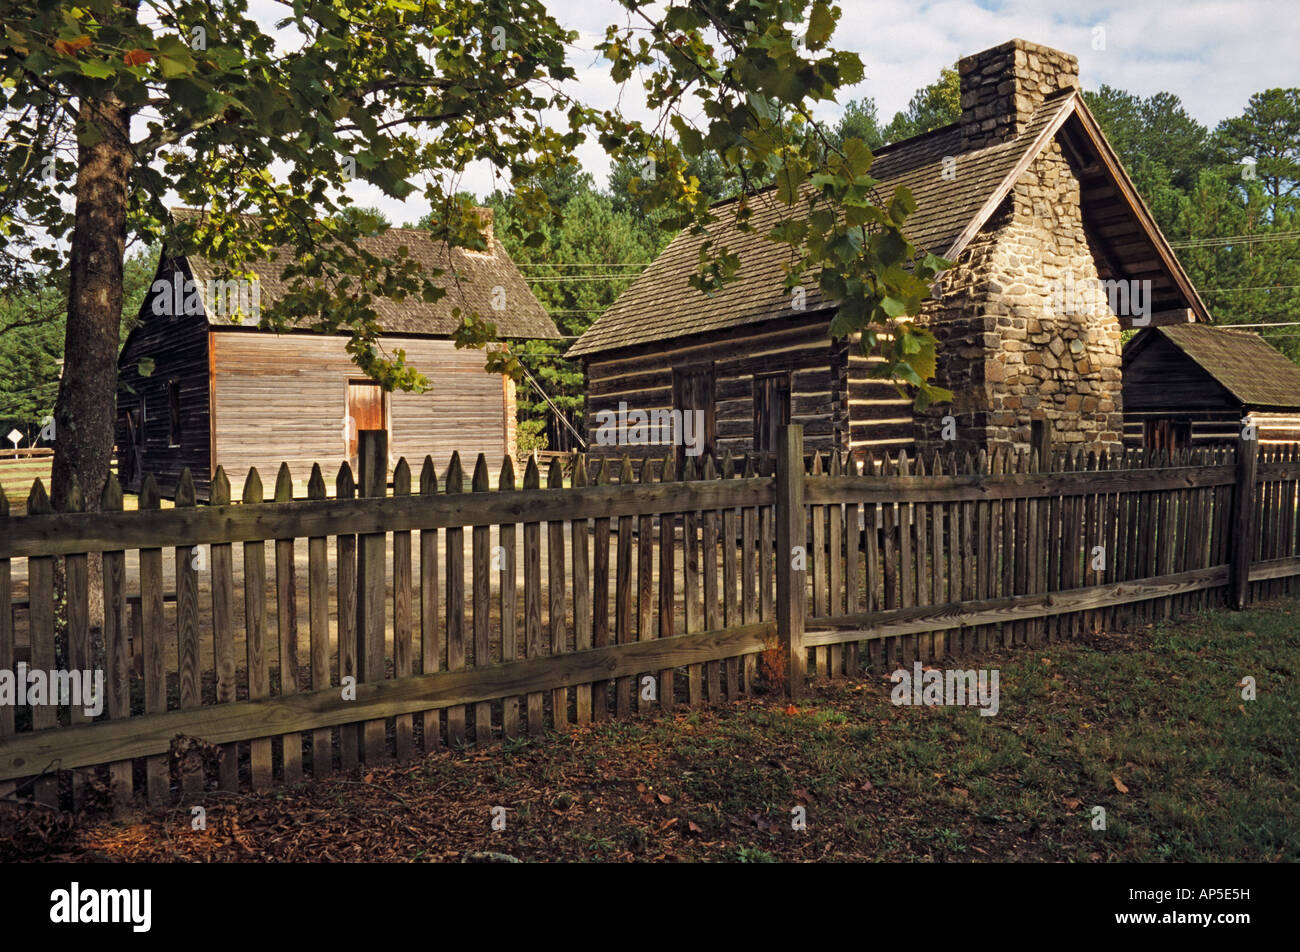 Benett Homestead, Durham, North Carolina, USA - Stock Image